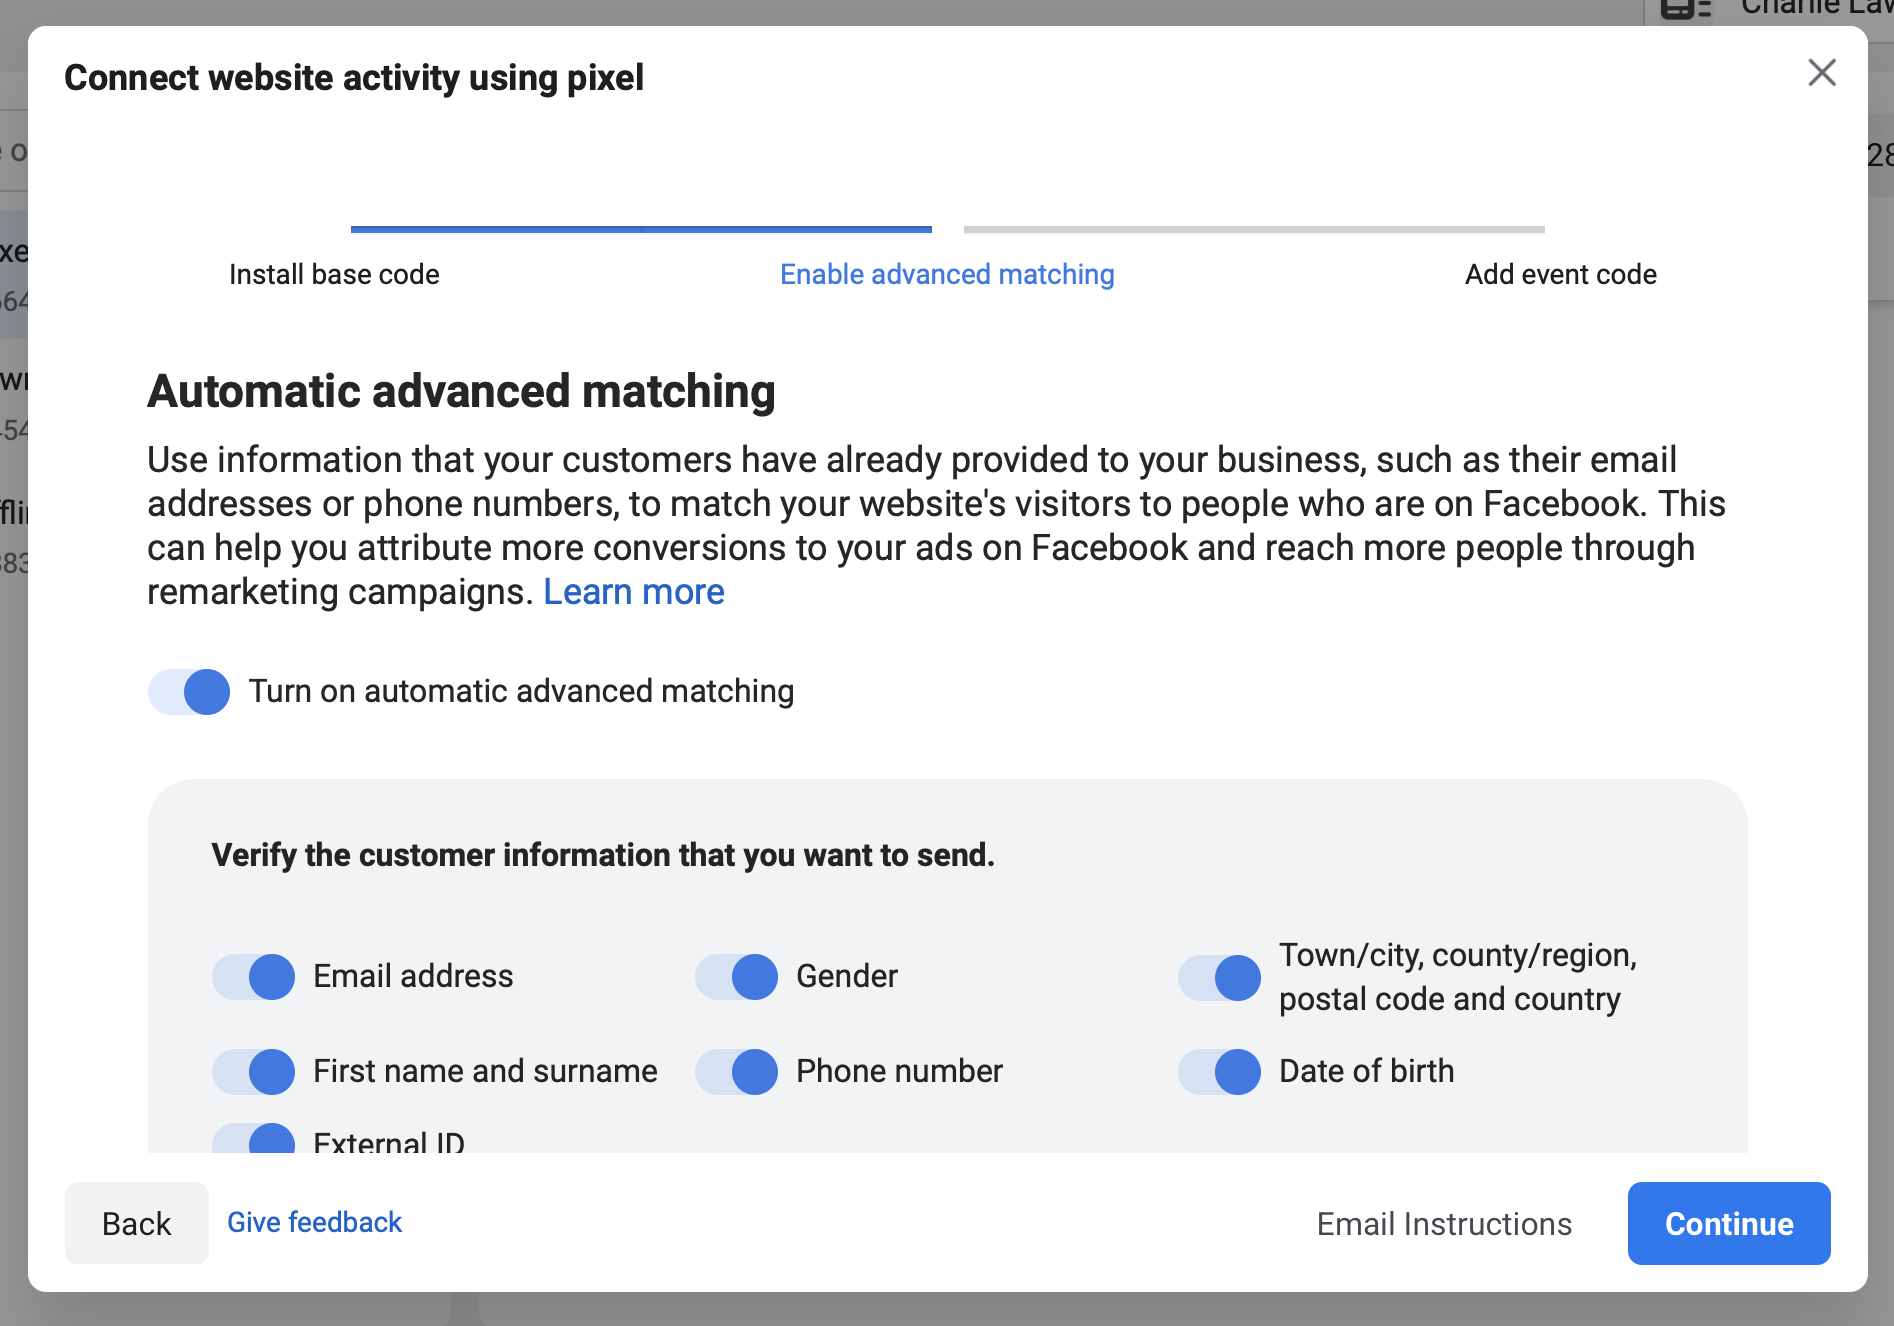 How to enable Facebook auto advanced matching